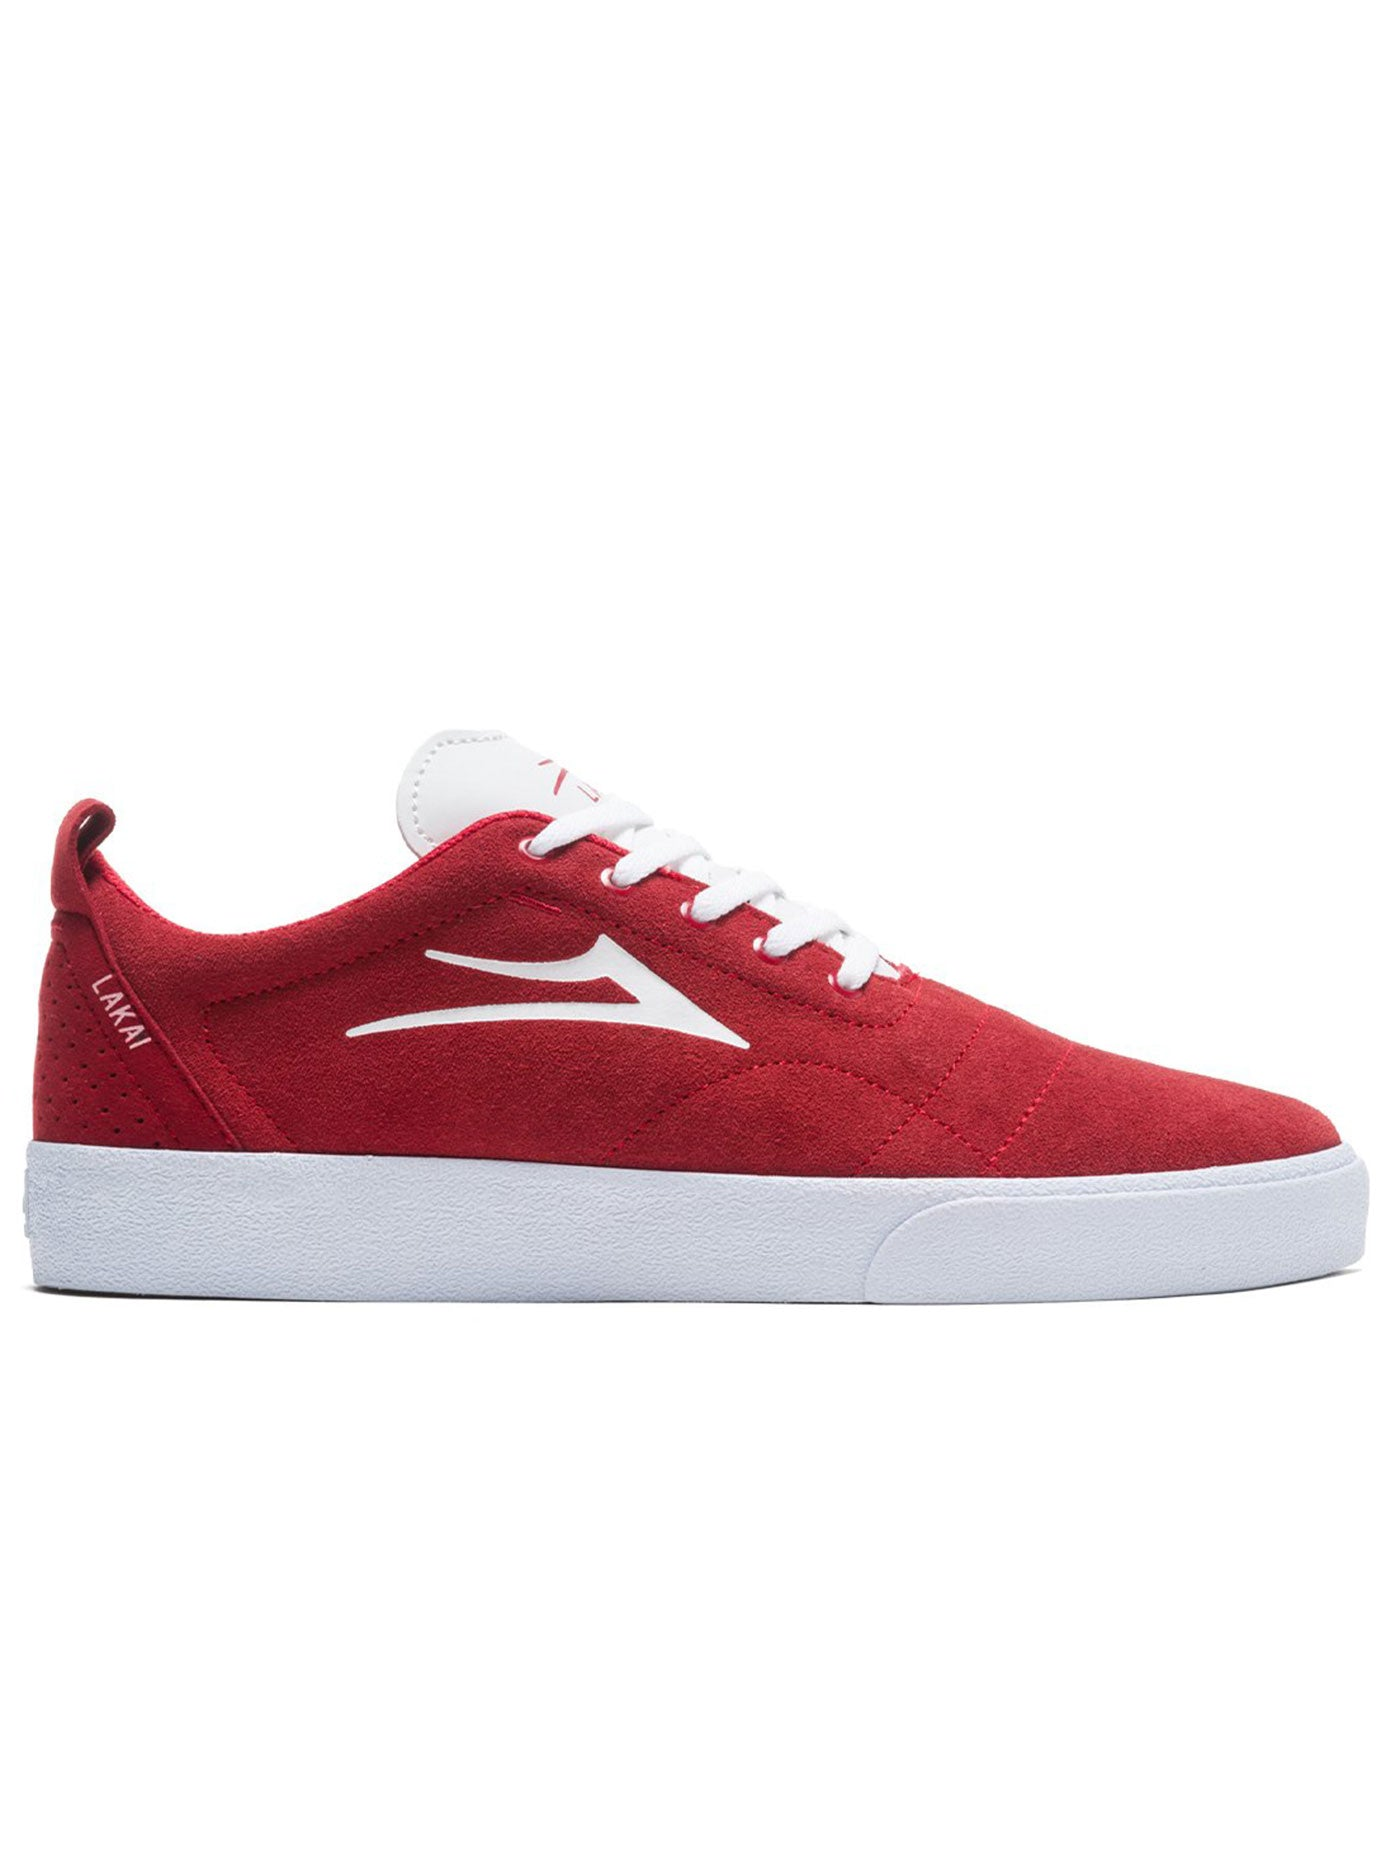 RED/WHITE SUEDE (RWS)